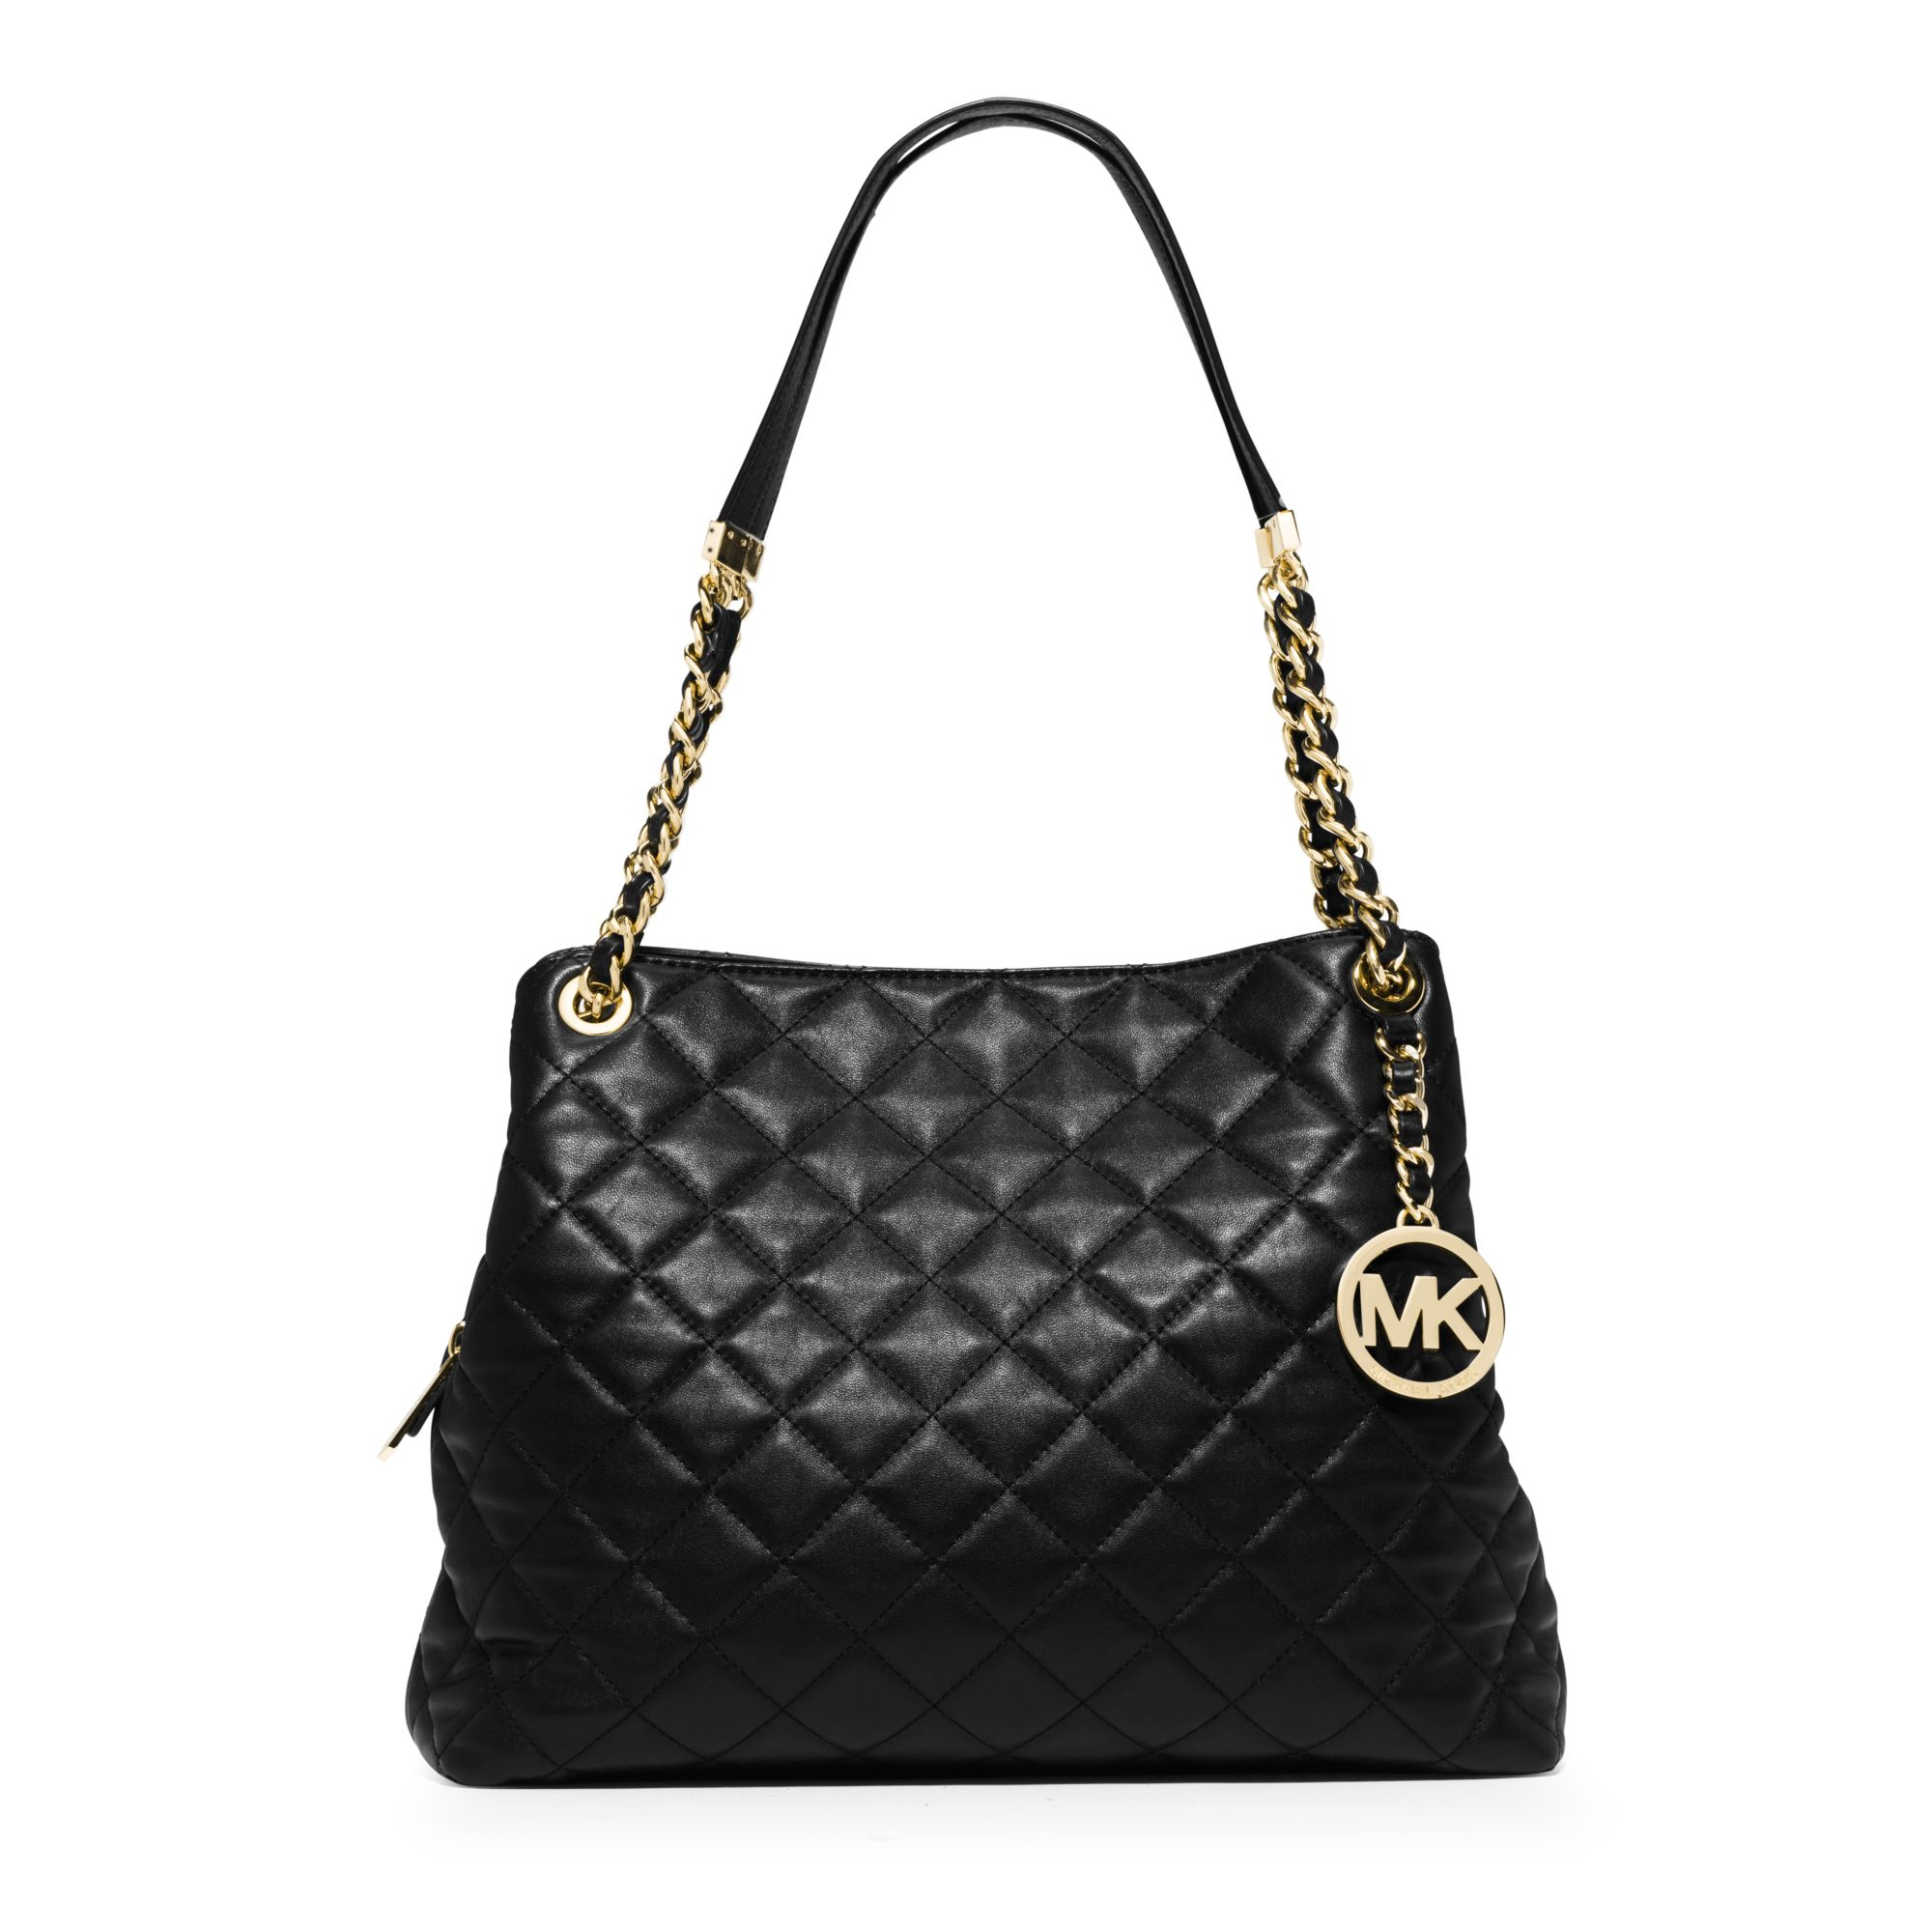 Michael Kors Bags Car Interior Design